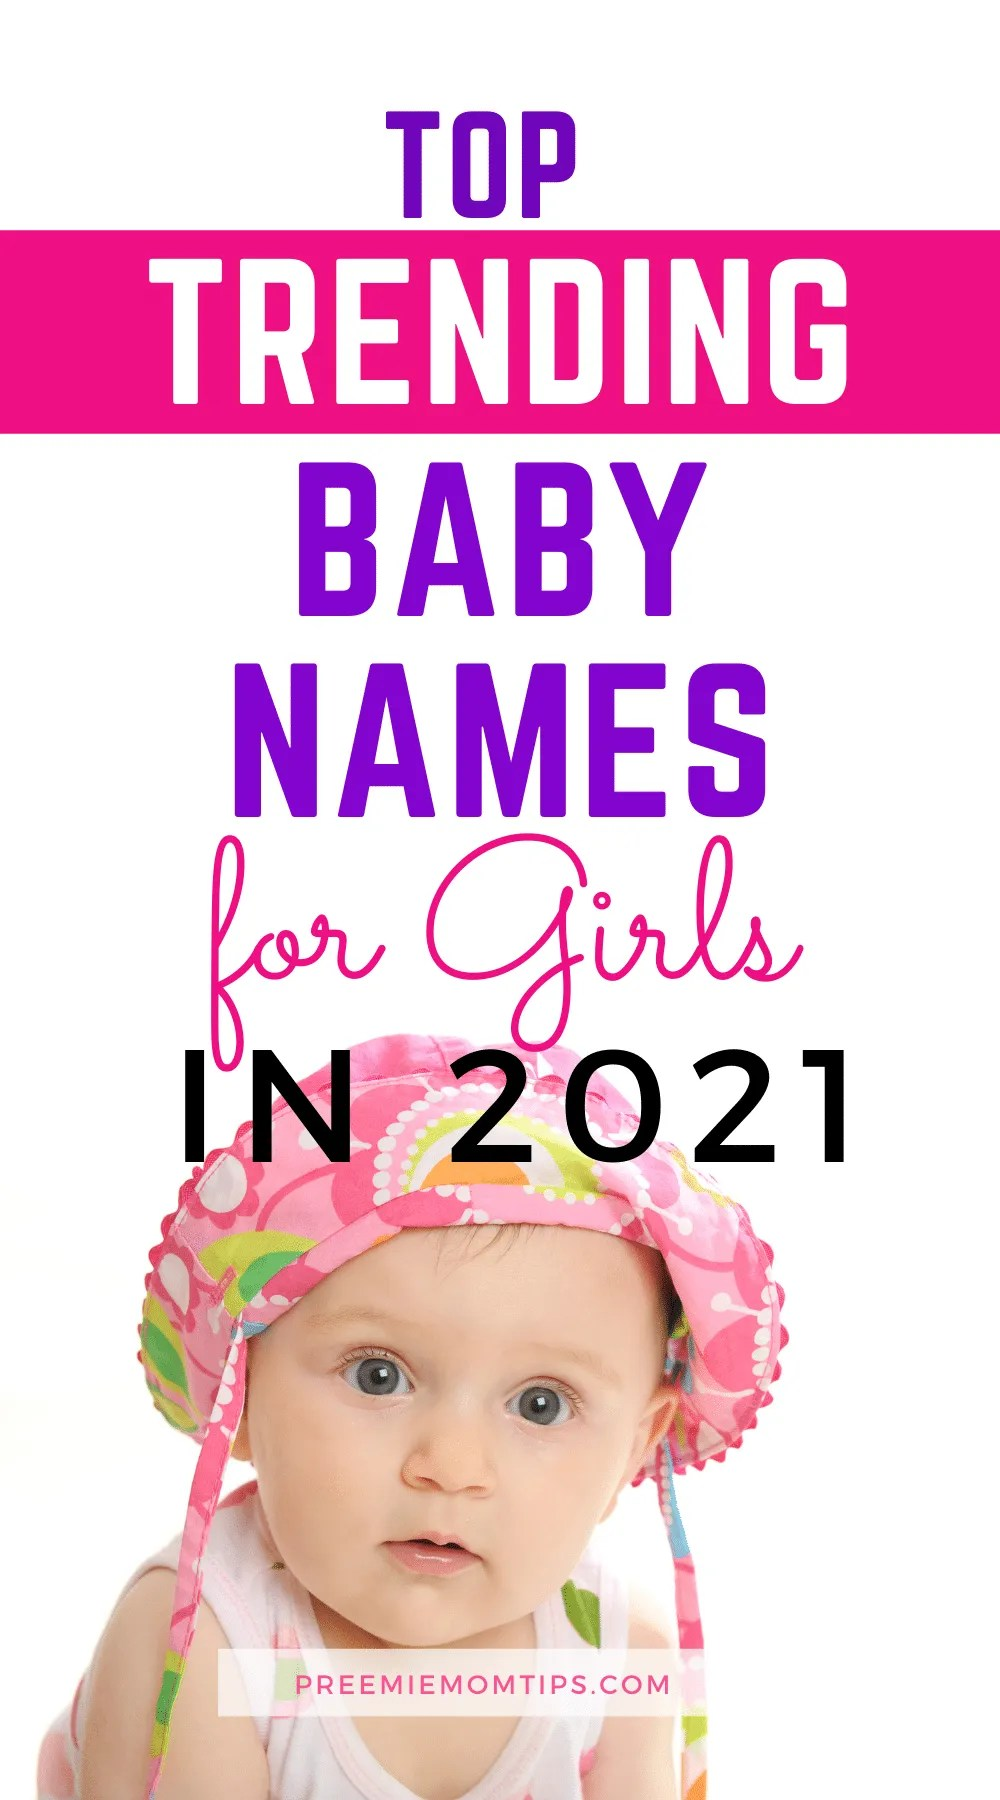 If you're looking for the perfect name for your baby girl, here are the top trending baby names for girls.